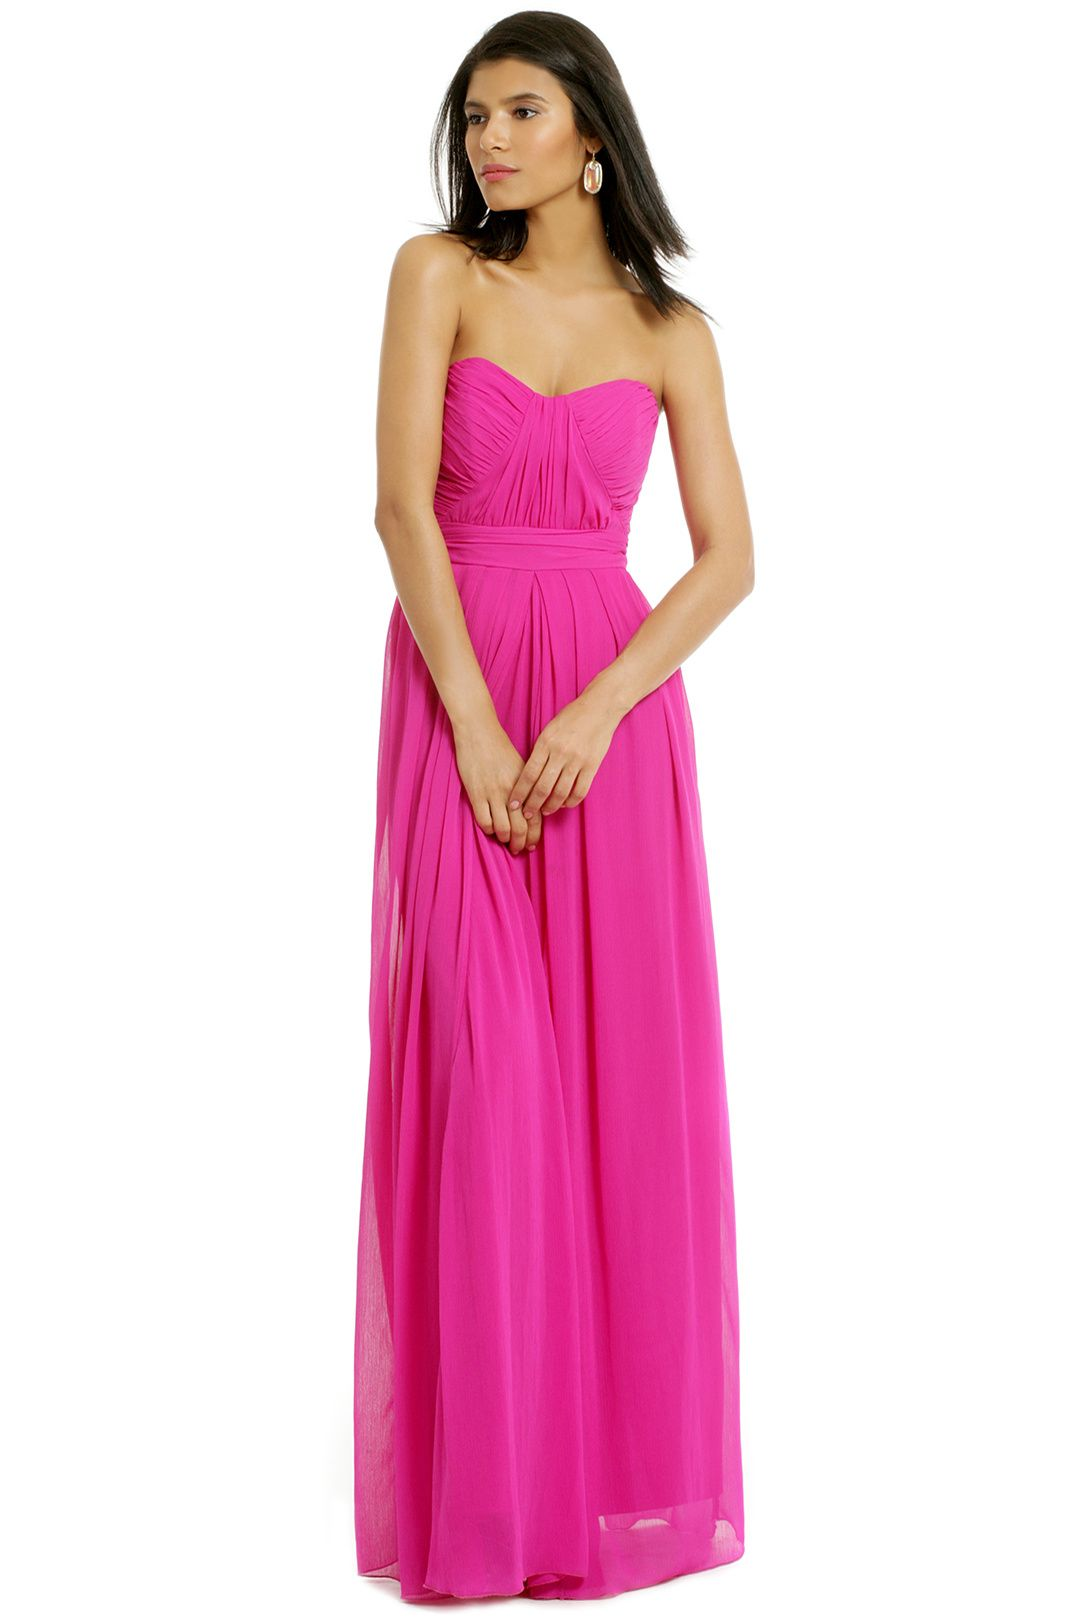 Fluorescent Chiffon Gown By Badgley Mischka For 80 Rent The - Rent Dress For Wedding Guest